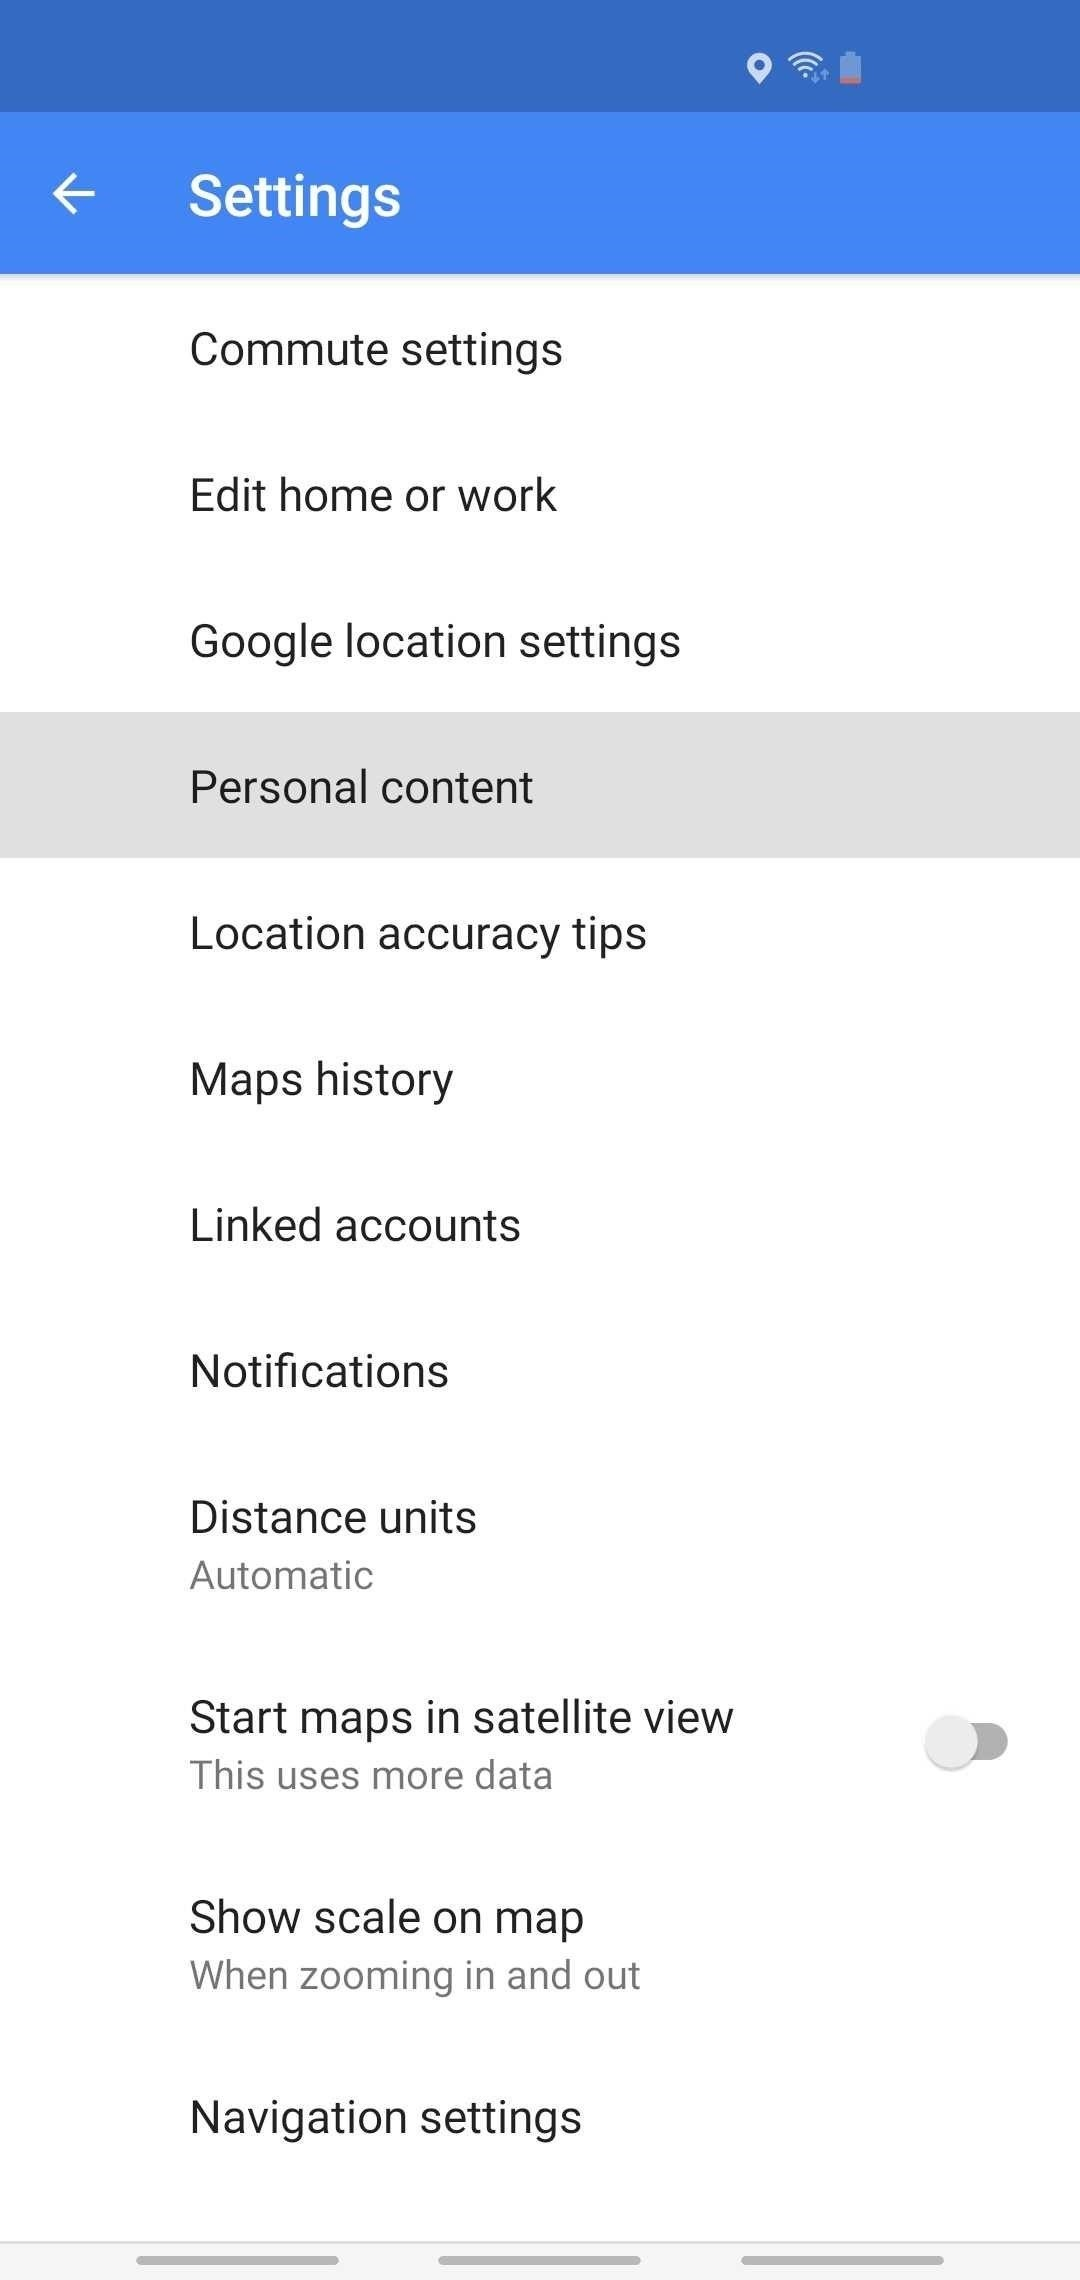 How to View & Manage Your Location History on Google Maps to Track Edit Home On Google Maps on